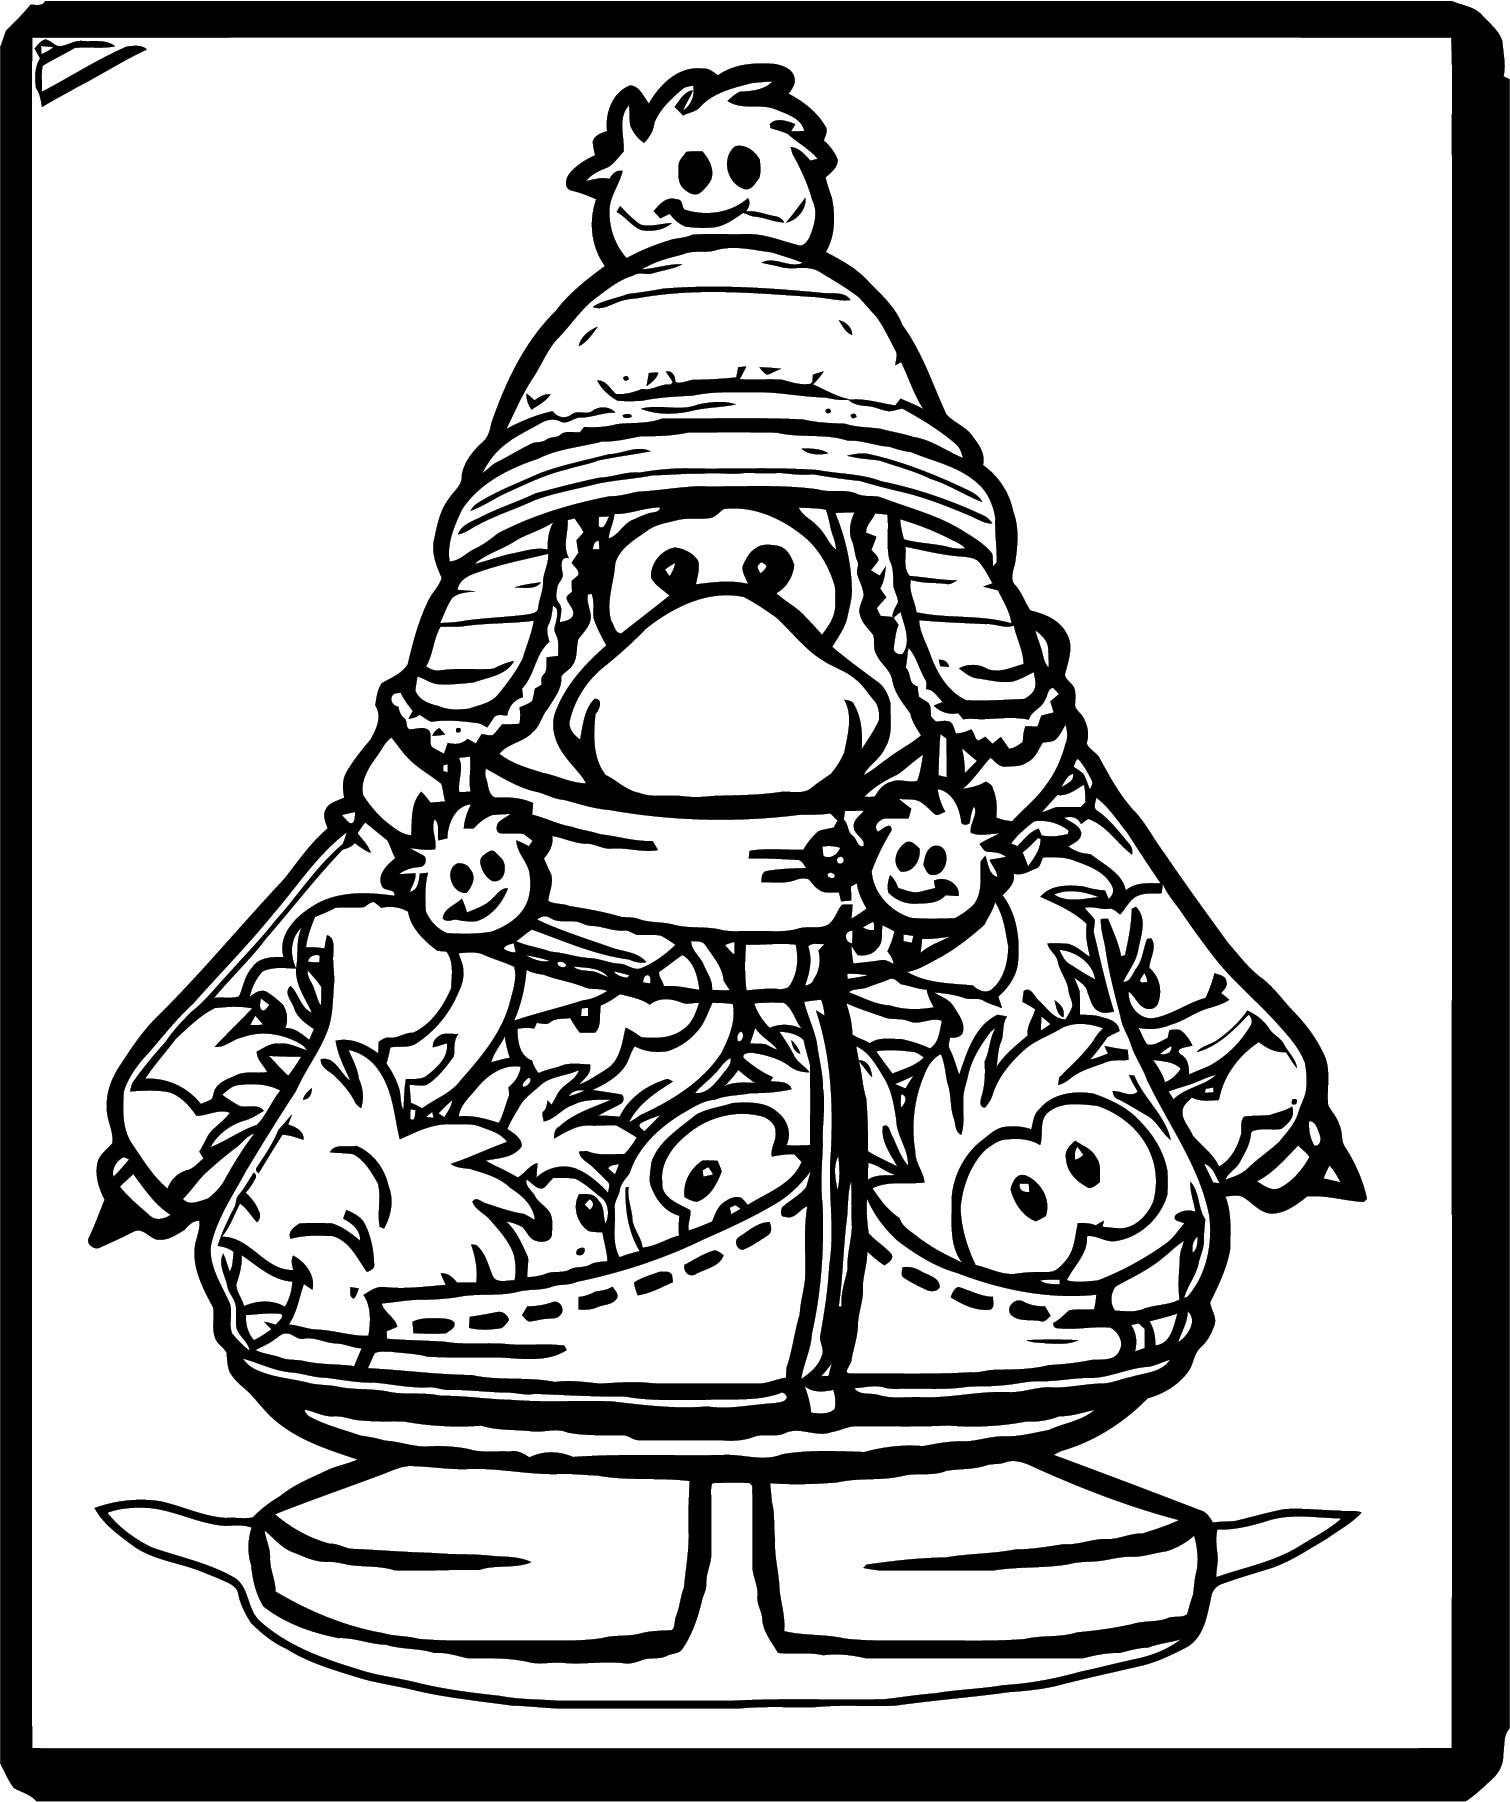 Club Penguin Wearing Puffle Stuff Coloring Page